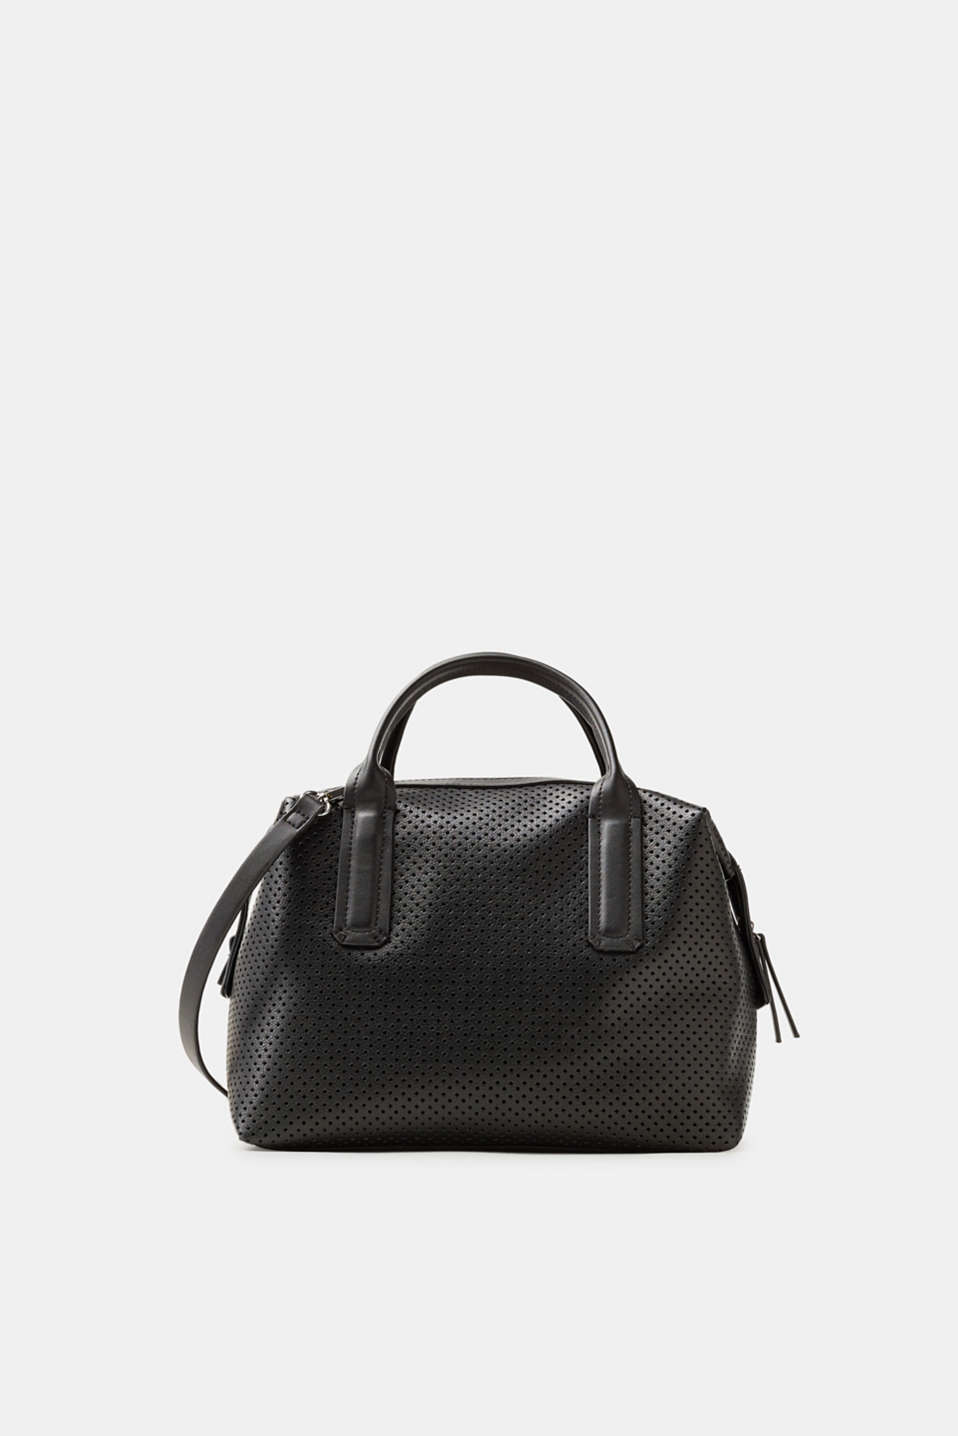 edc - City bag in perforated faux leather